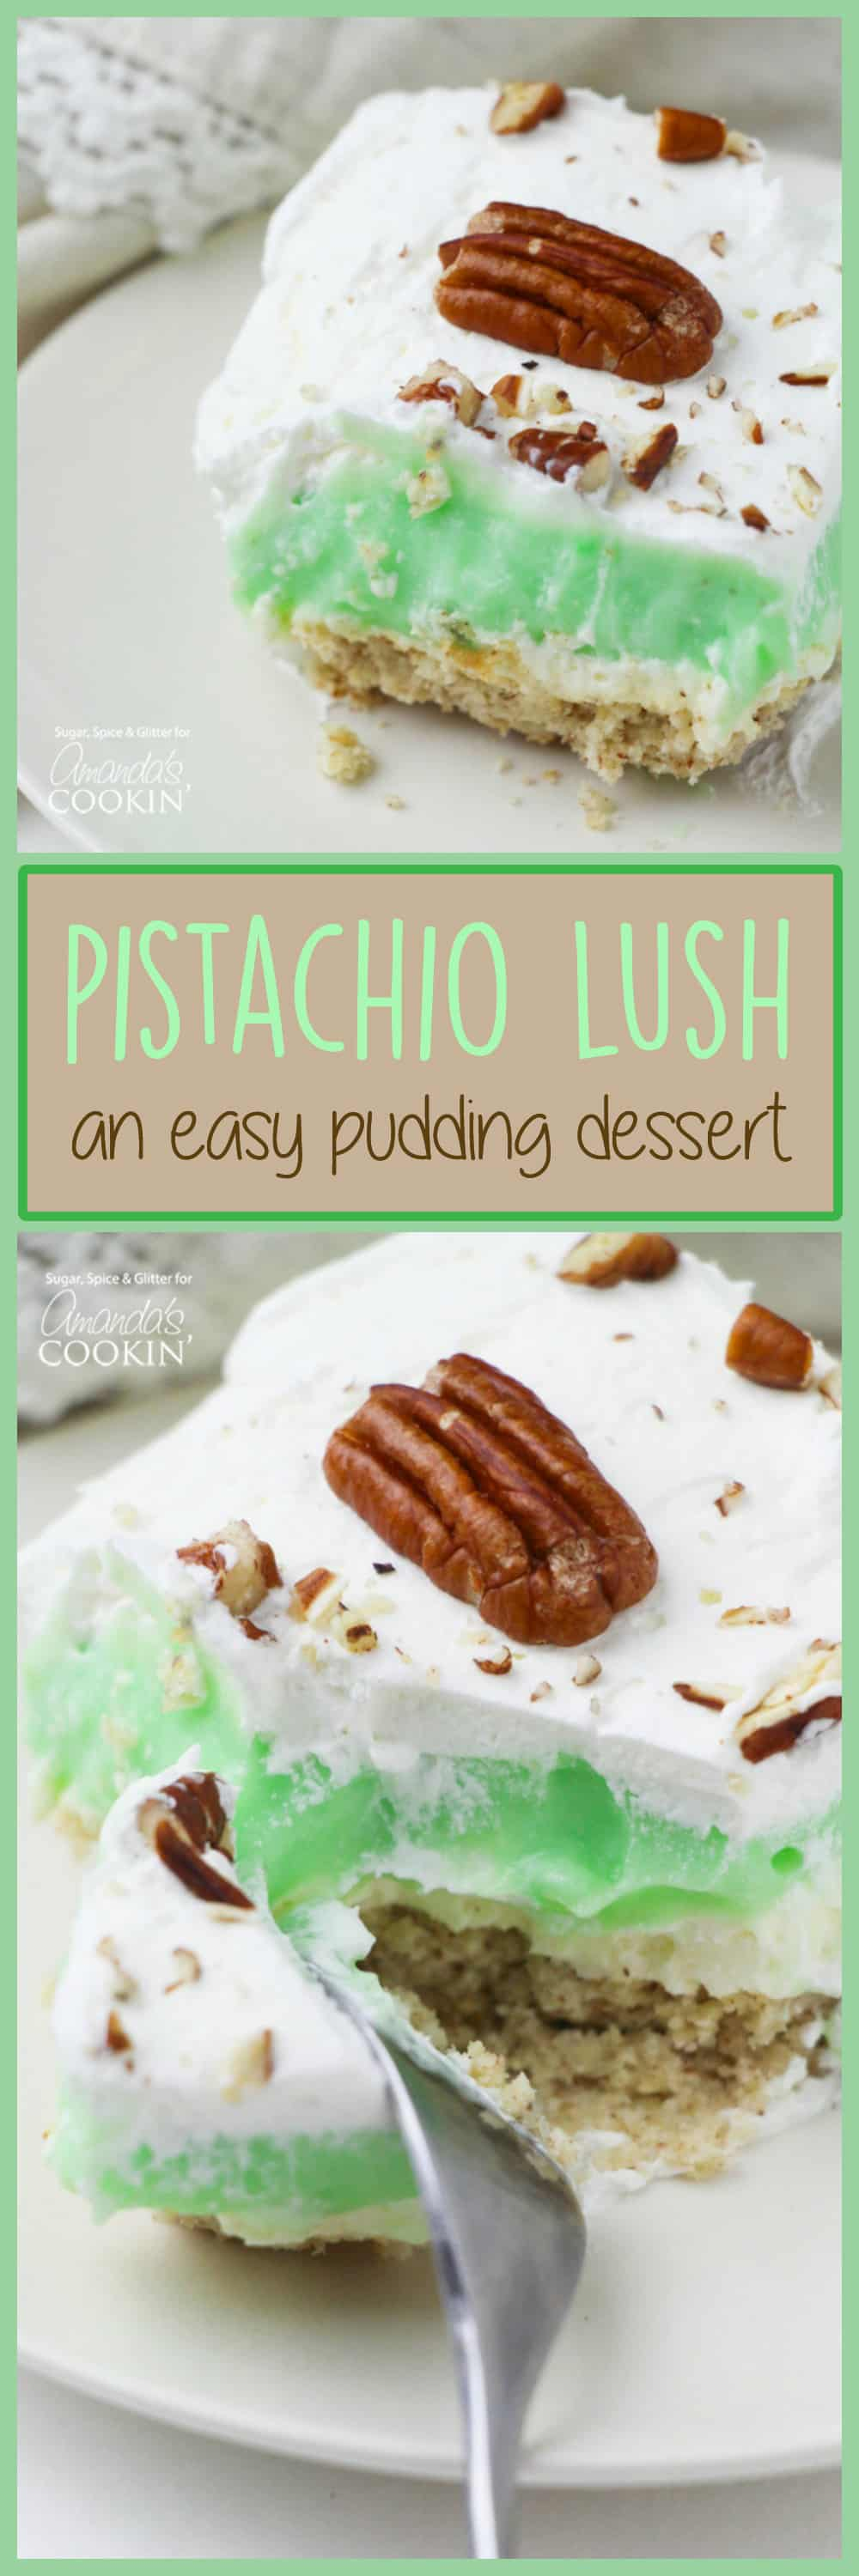 This Pistachio Lush is the perfect easy dessert for entertaining, especially when you want something decadent but not too heavy.